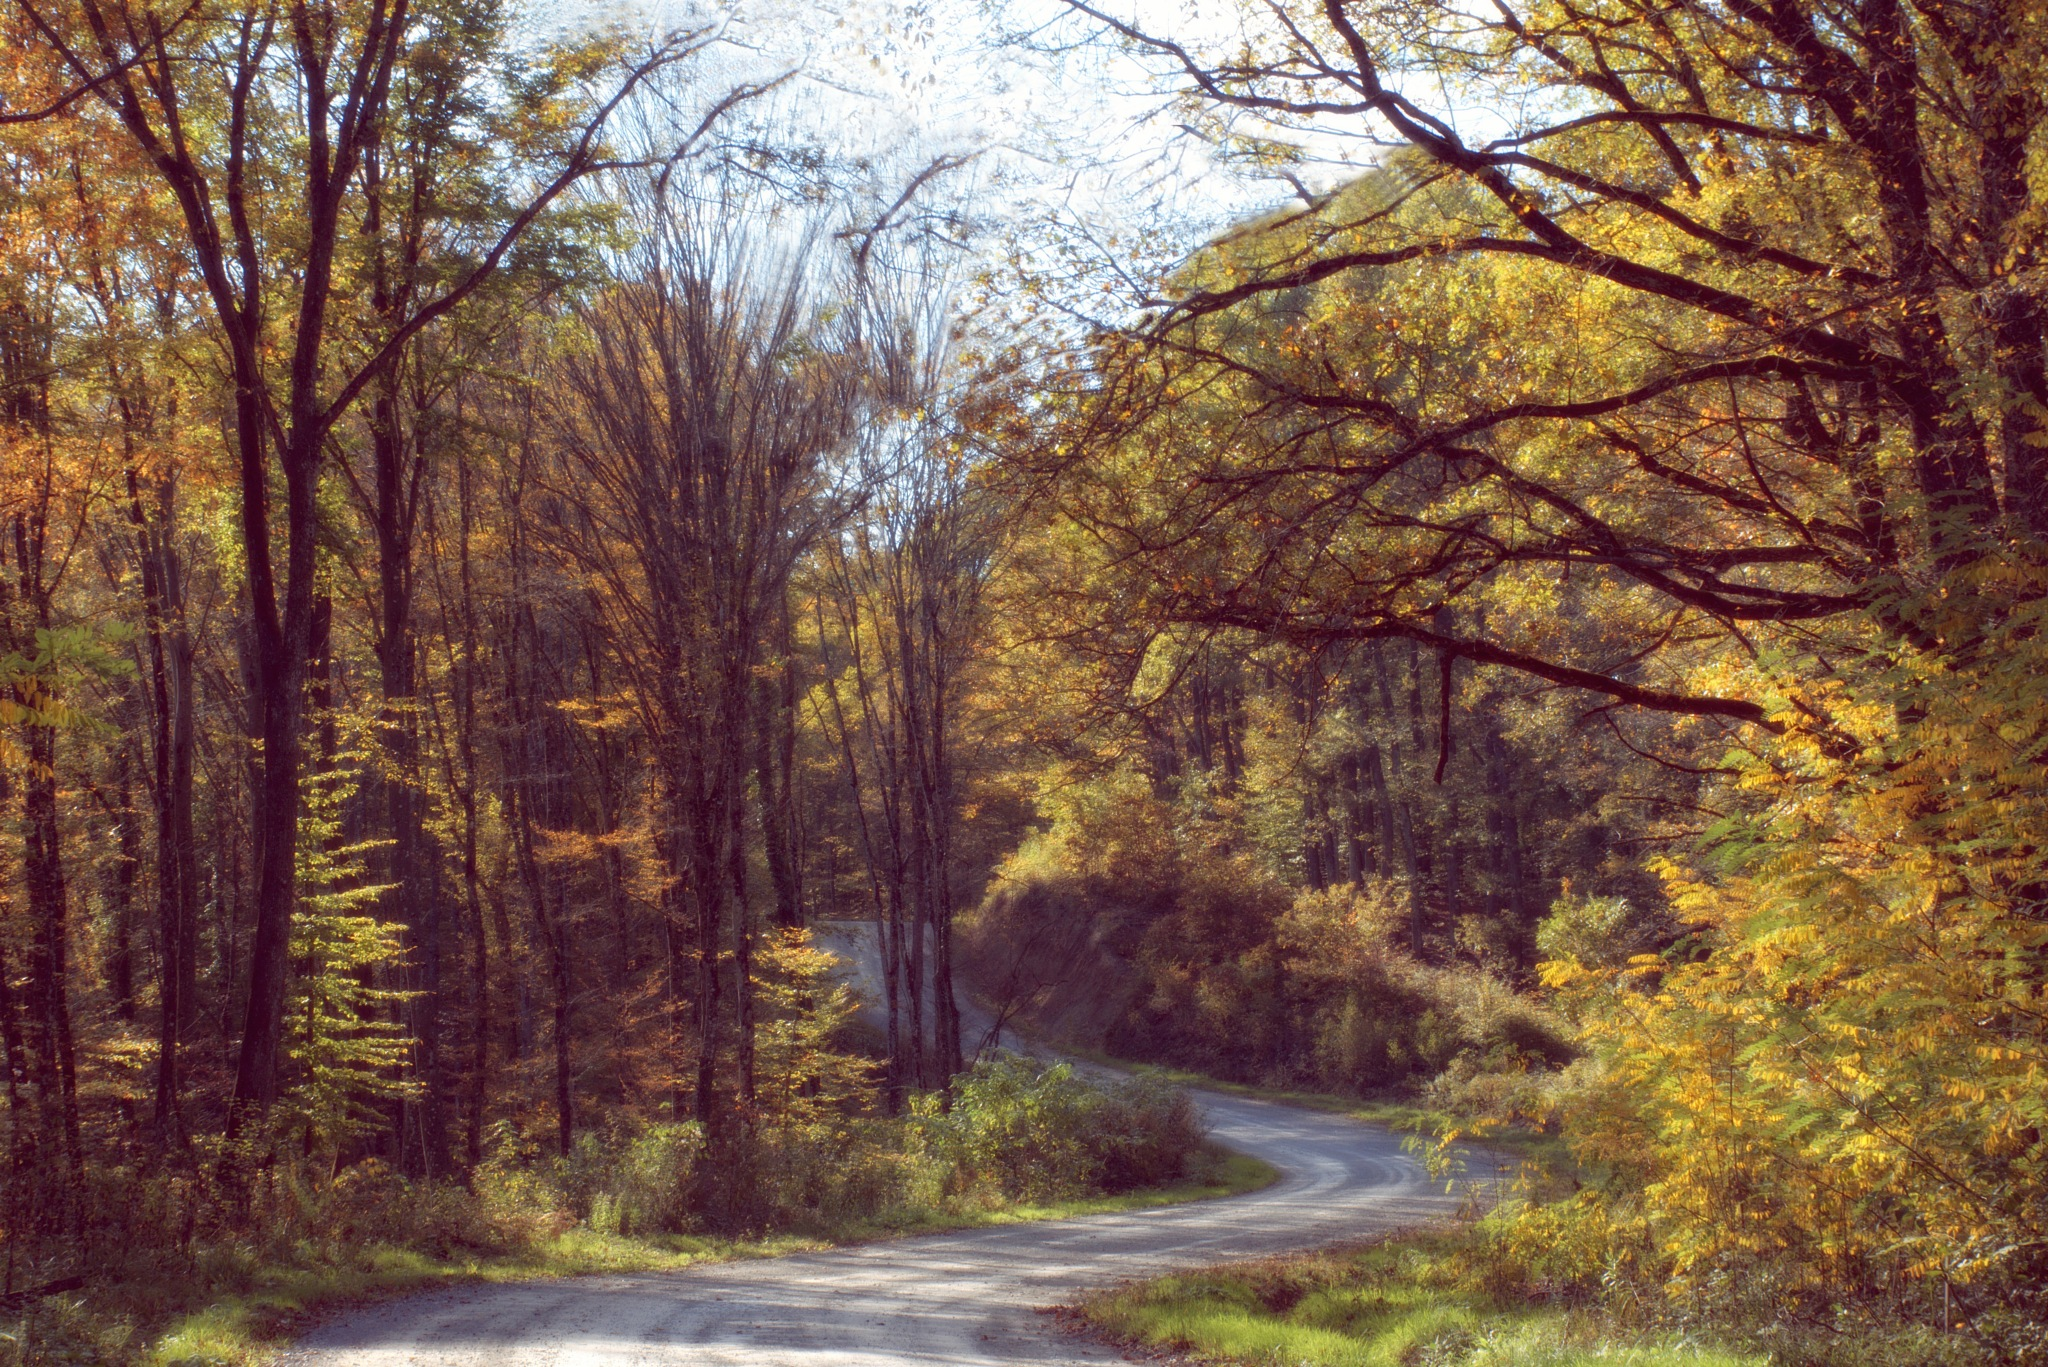 Forest in the fall by nada.gr.